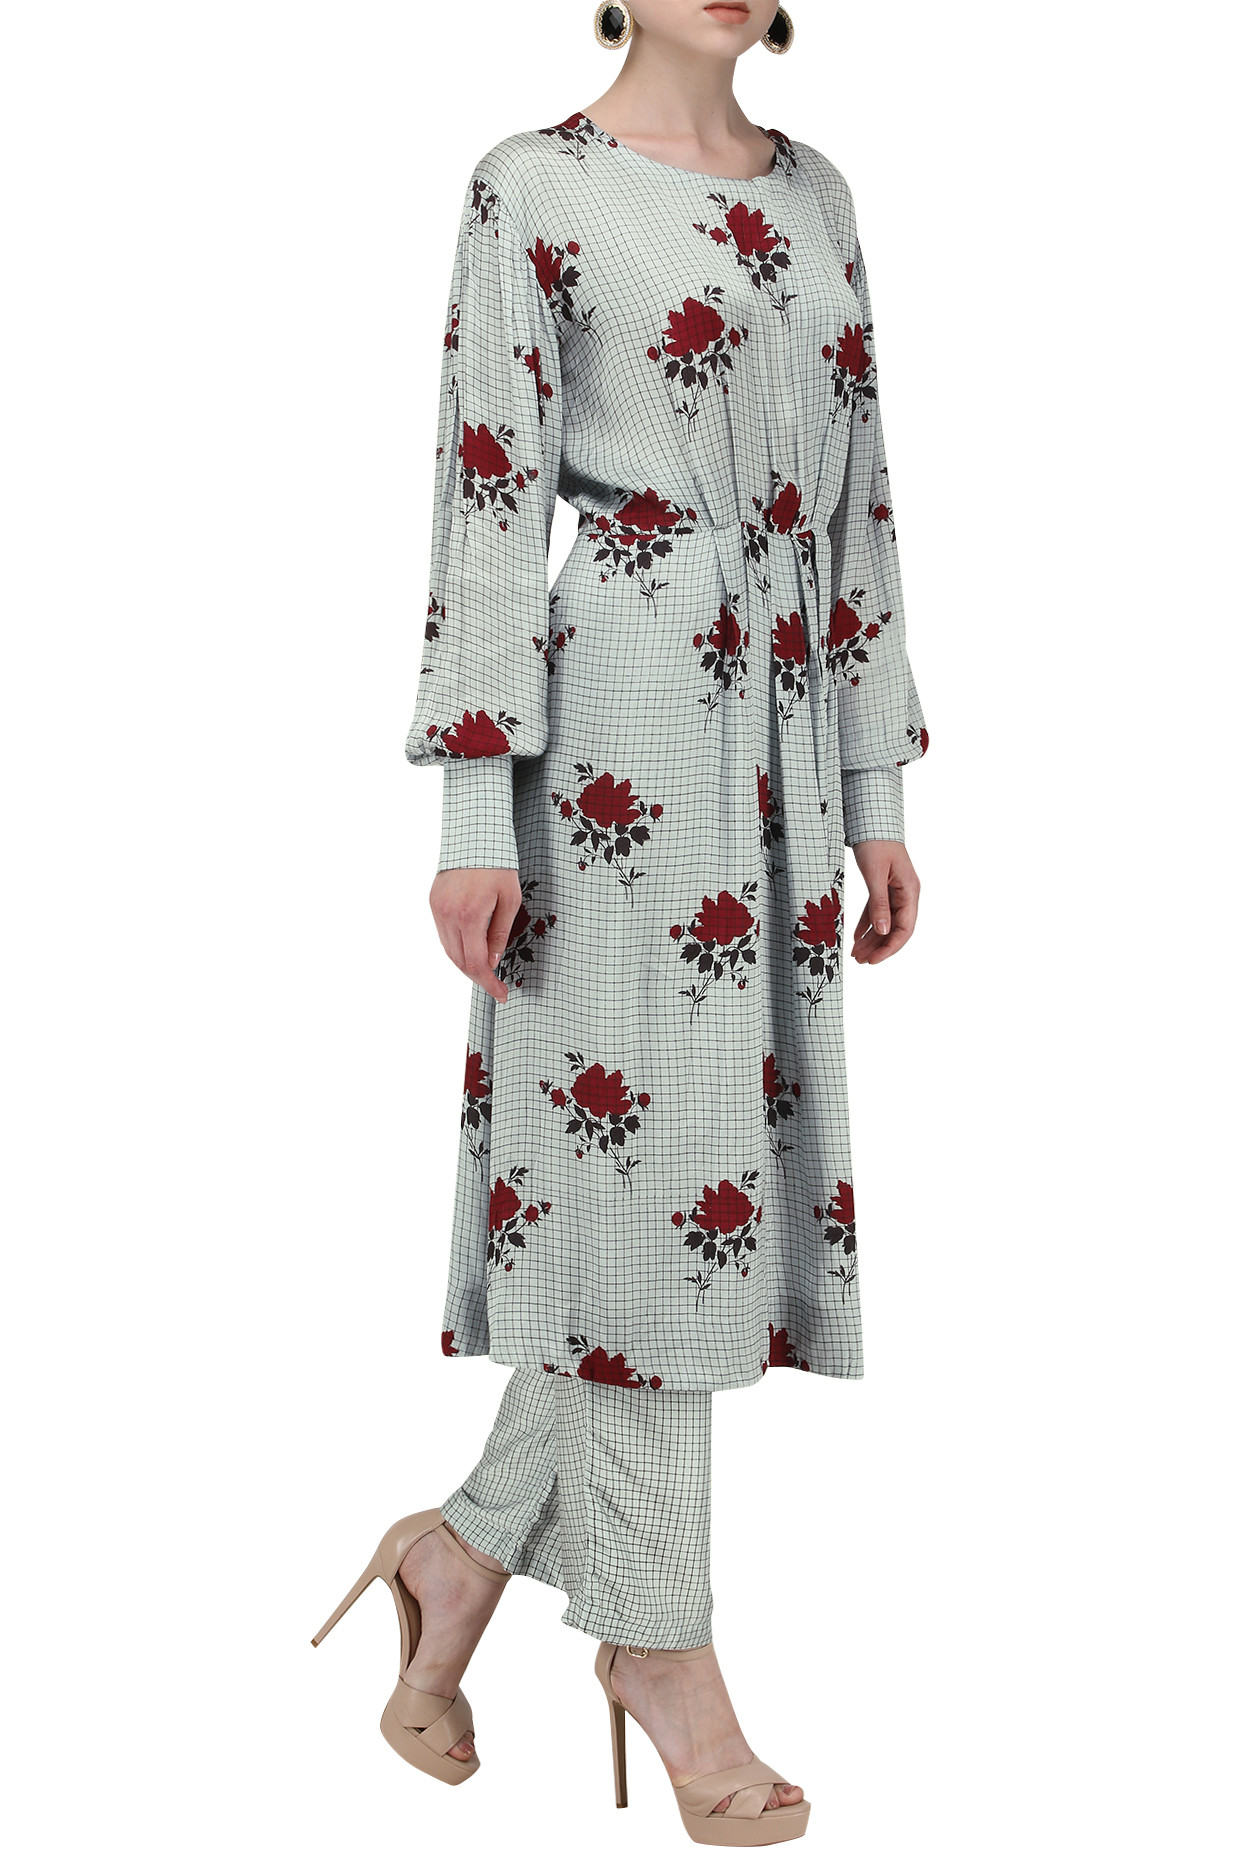 Jade Blue Rose Embroidered Kurta with Pants by Pinnacle by Shruti Sancheti